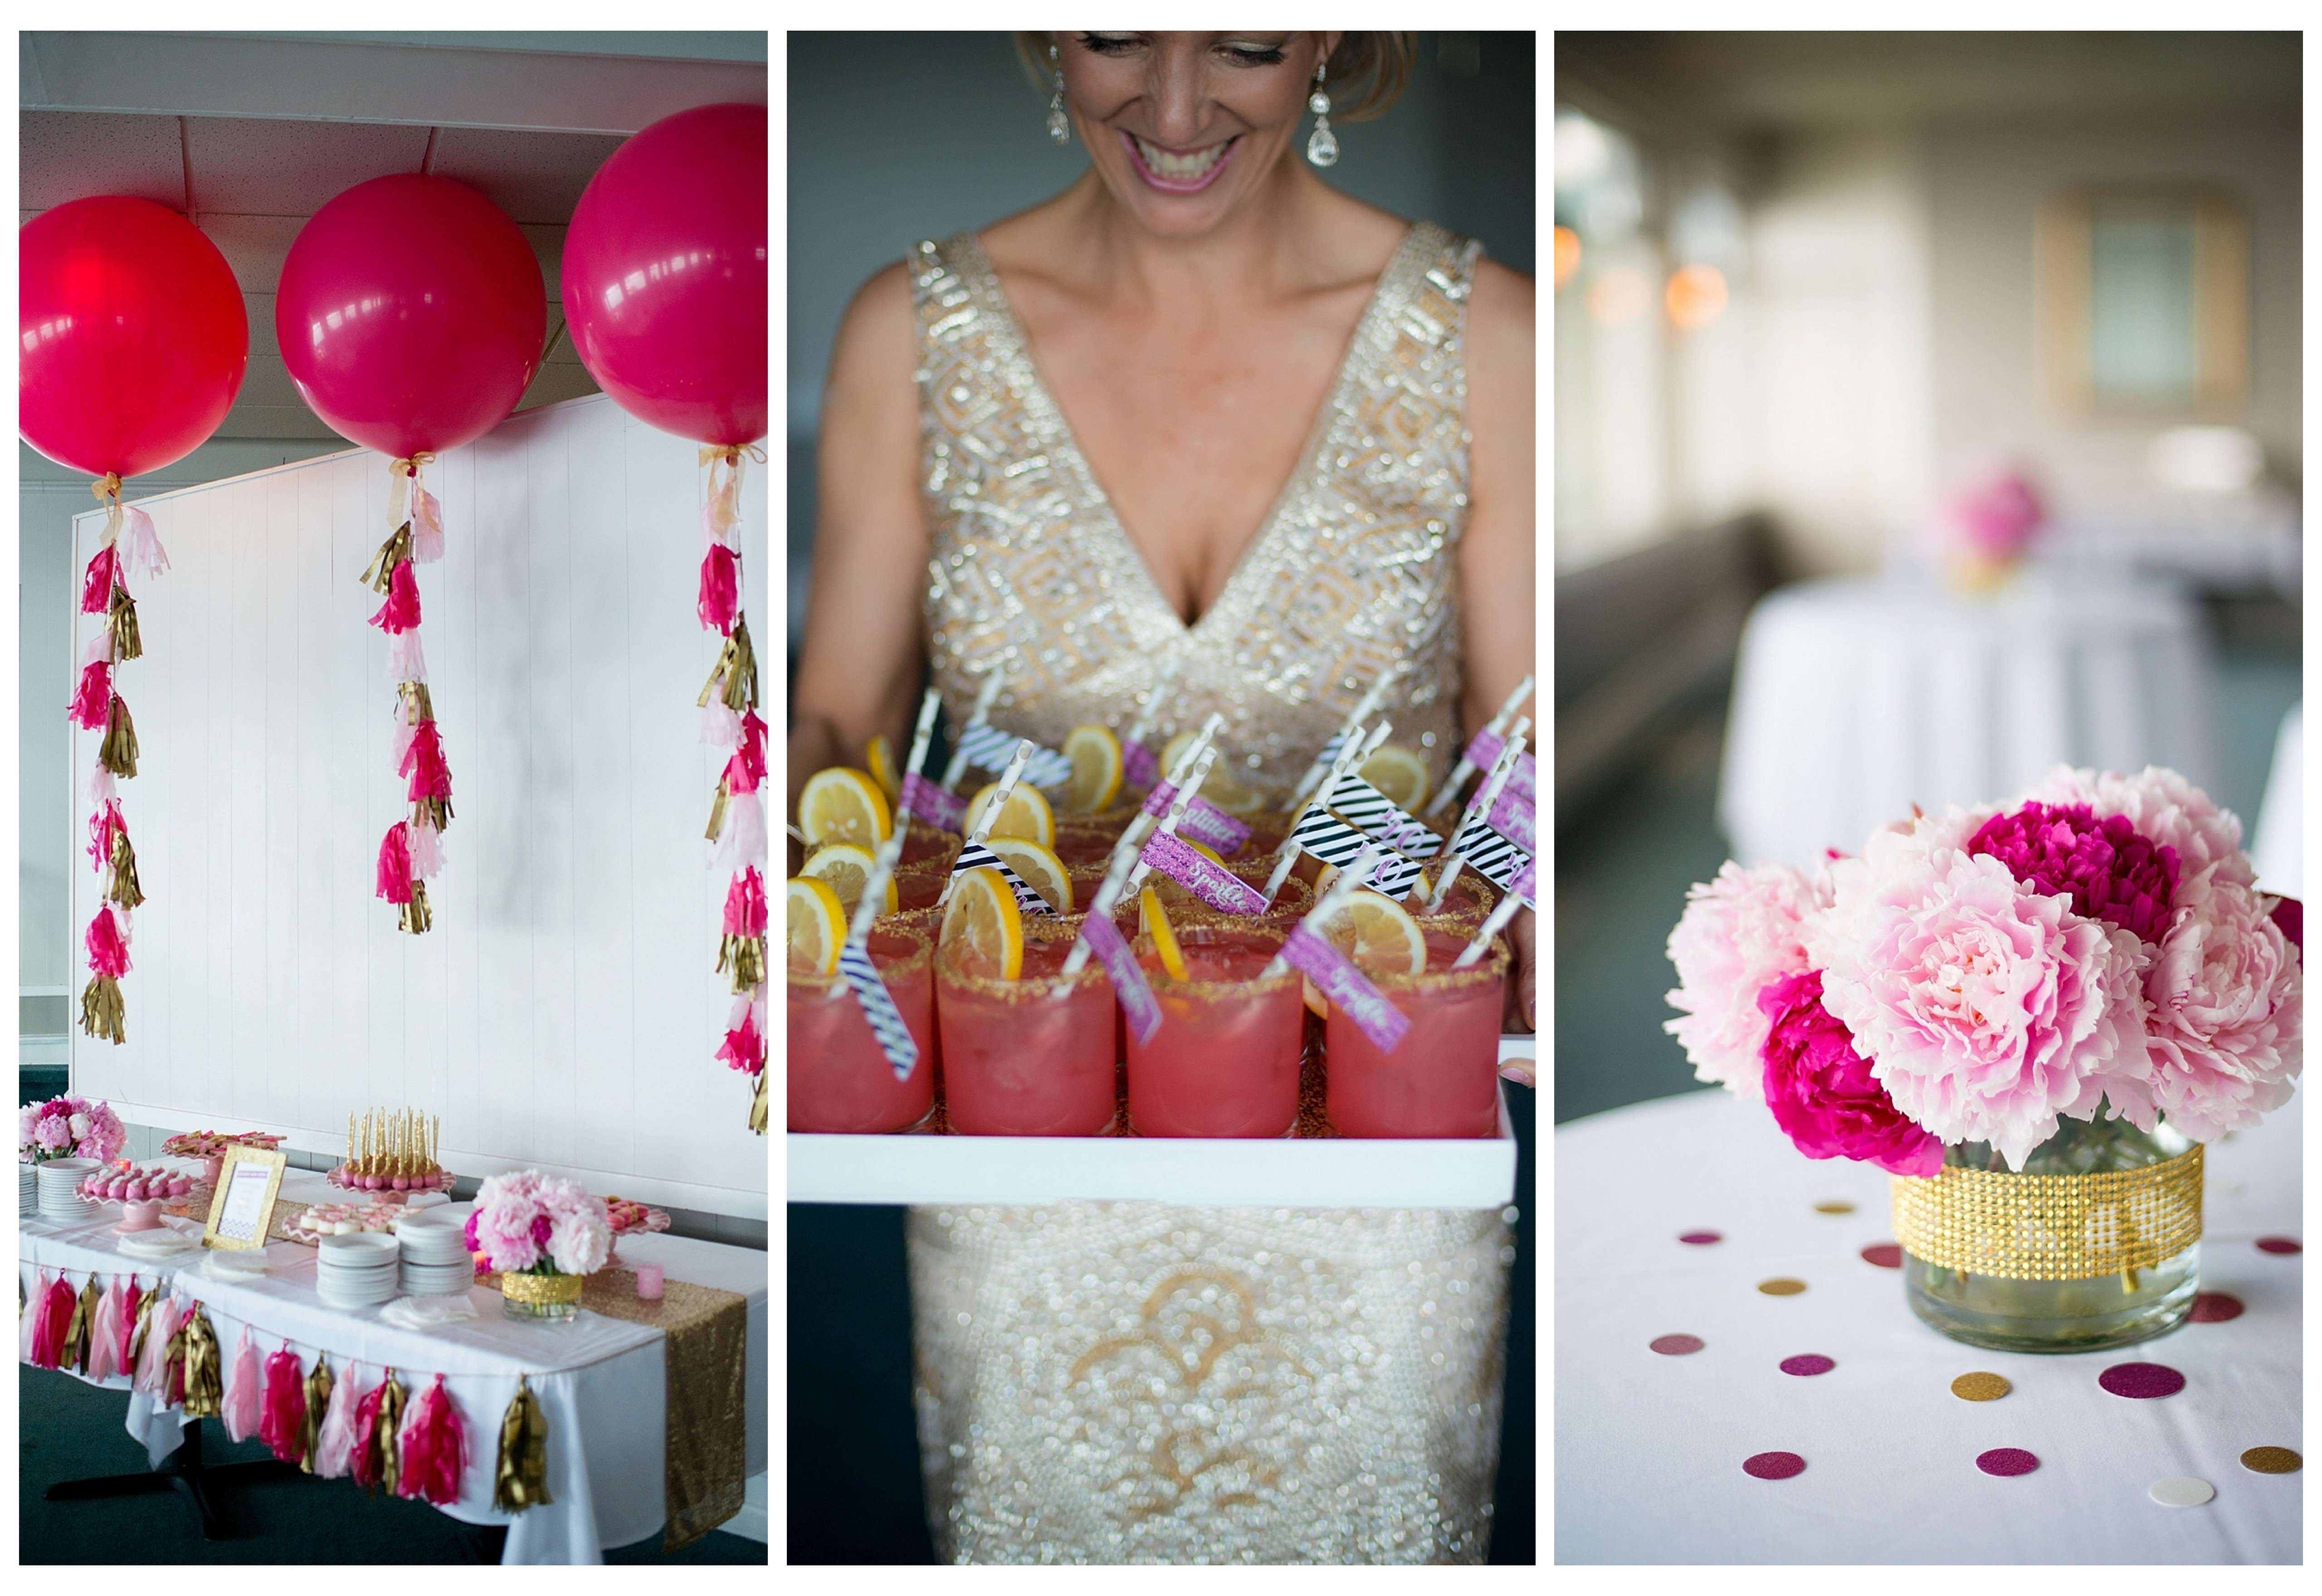 10 Lovely Ideas For 40Th Birthday Party Female a glam 40th birthday party 3 2020